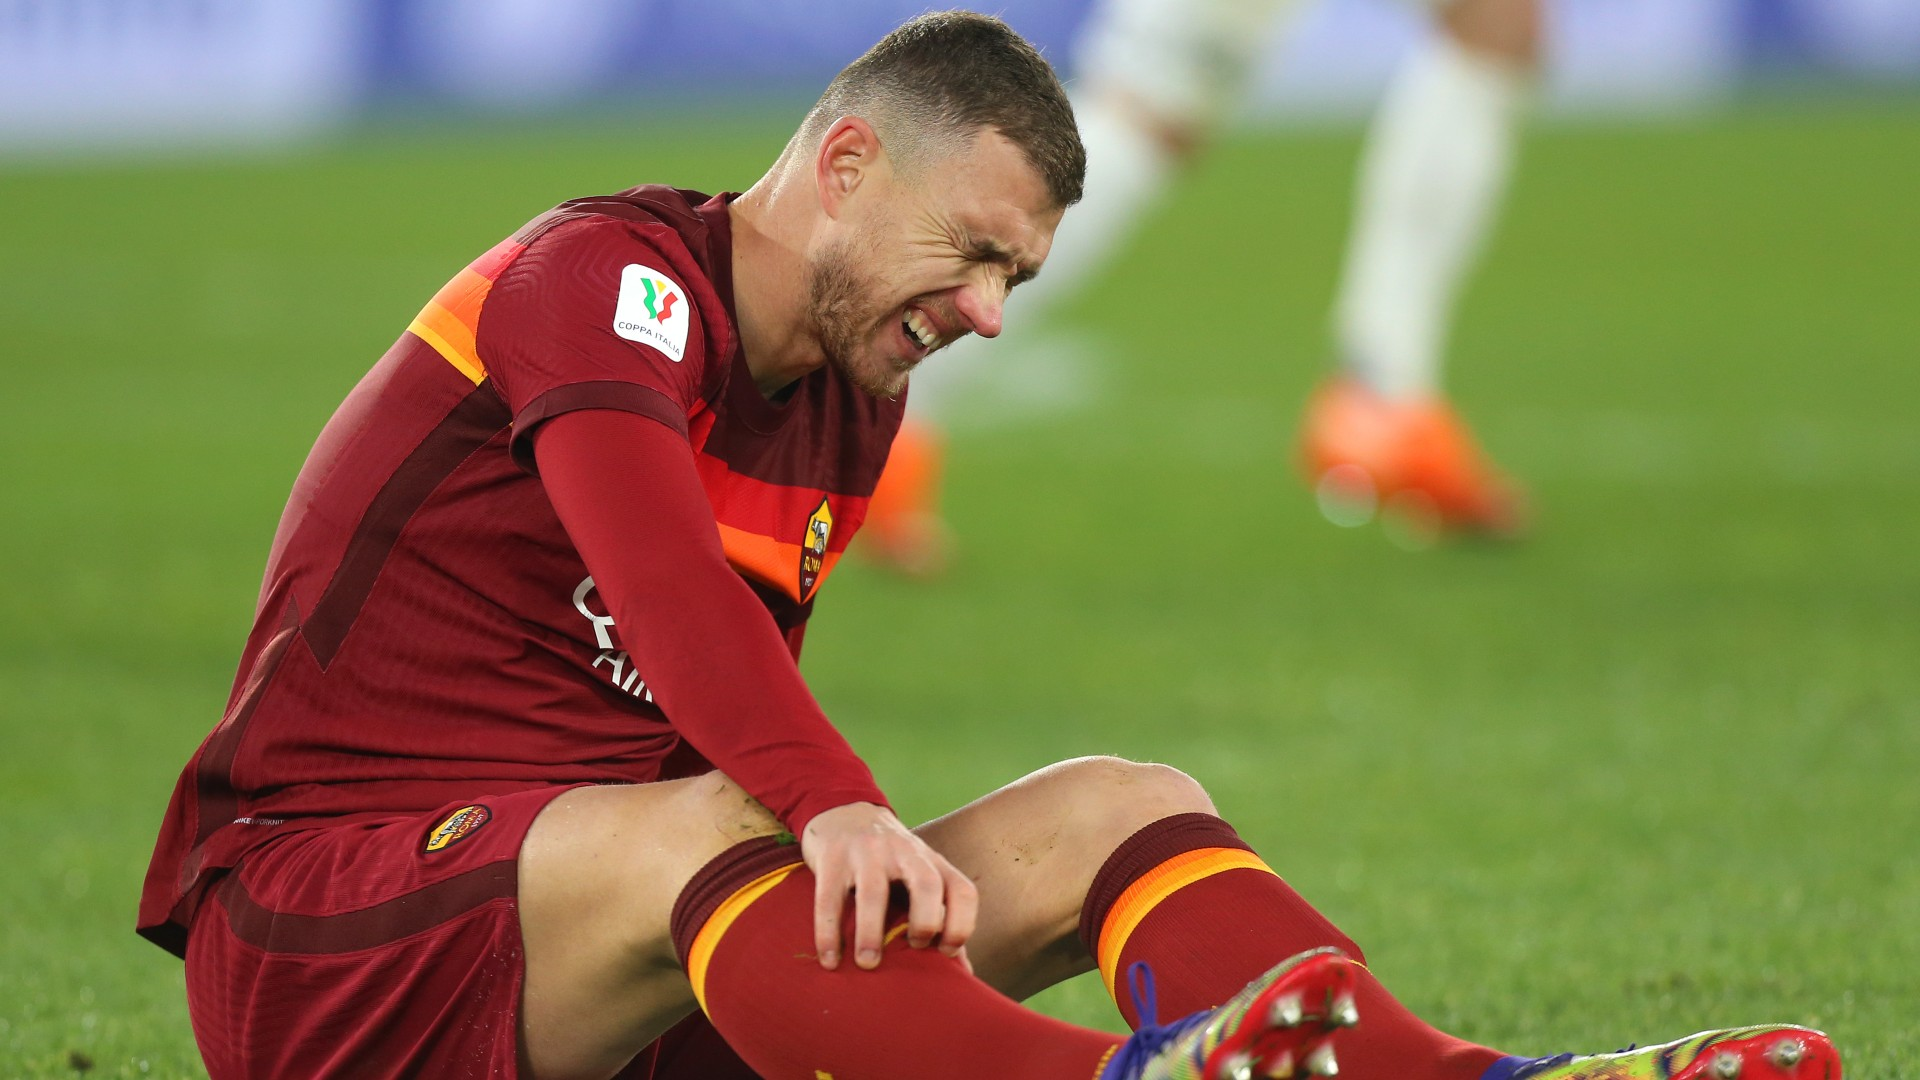 Two crimson playing cards in two minutes and an unlawful substitution watch Roma shatter out of Coppa Italia in humorous vogue